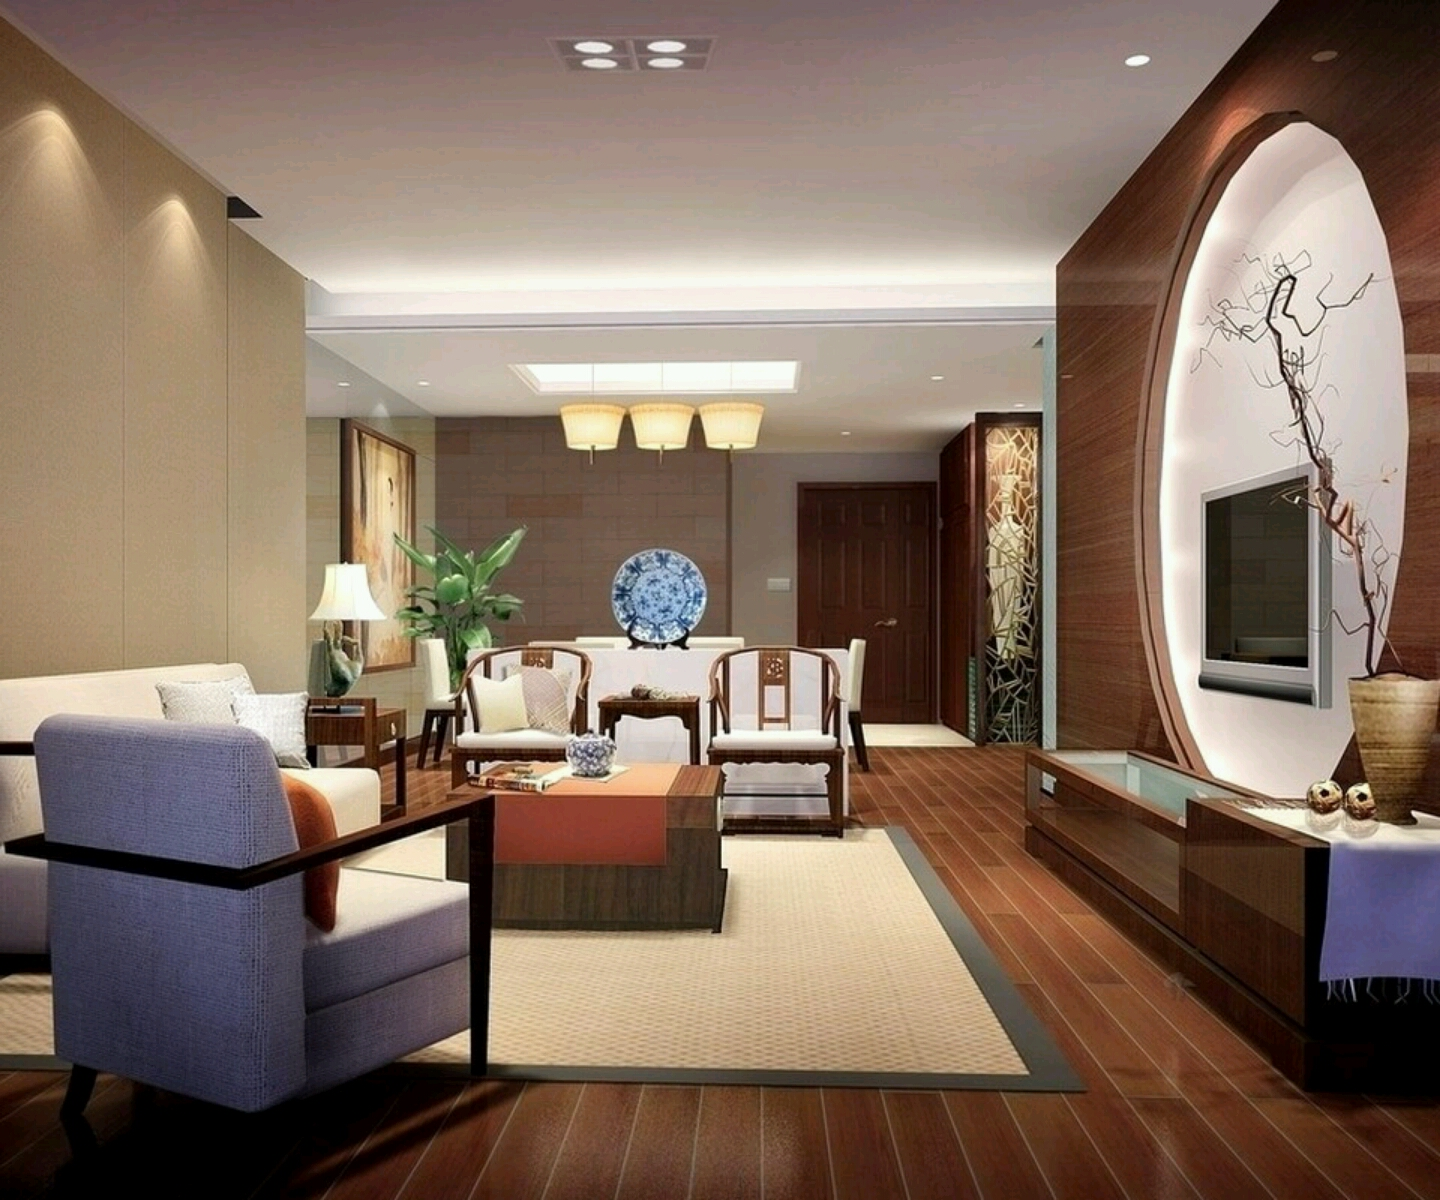 Luxury homes interior decoration living room designs ideas for Home inside decoration